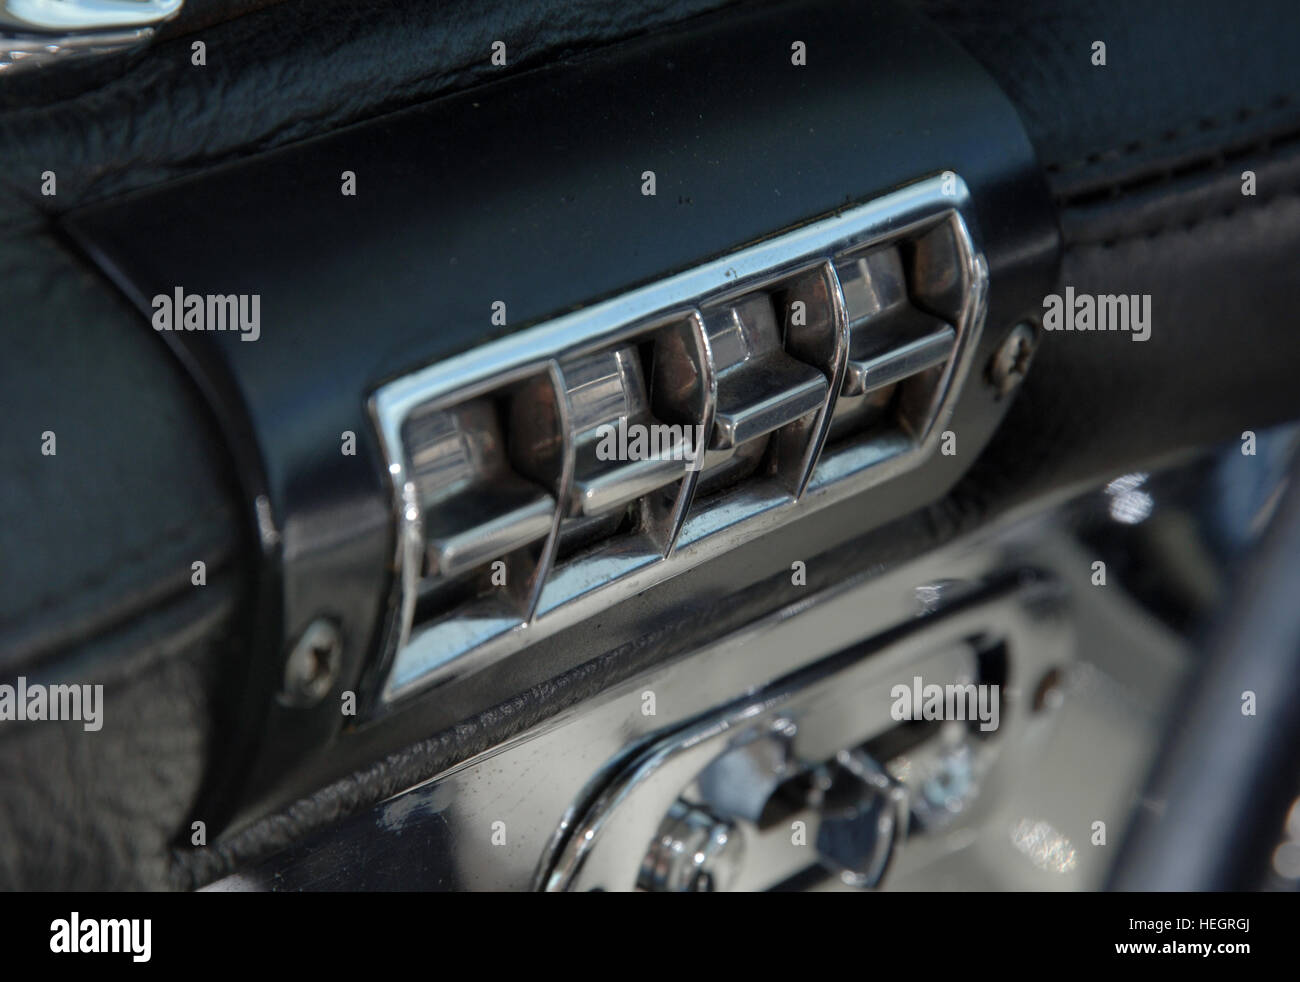 Car Switches Stock Photos & Car Switches Stock Images - Alamy